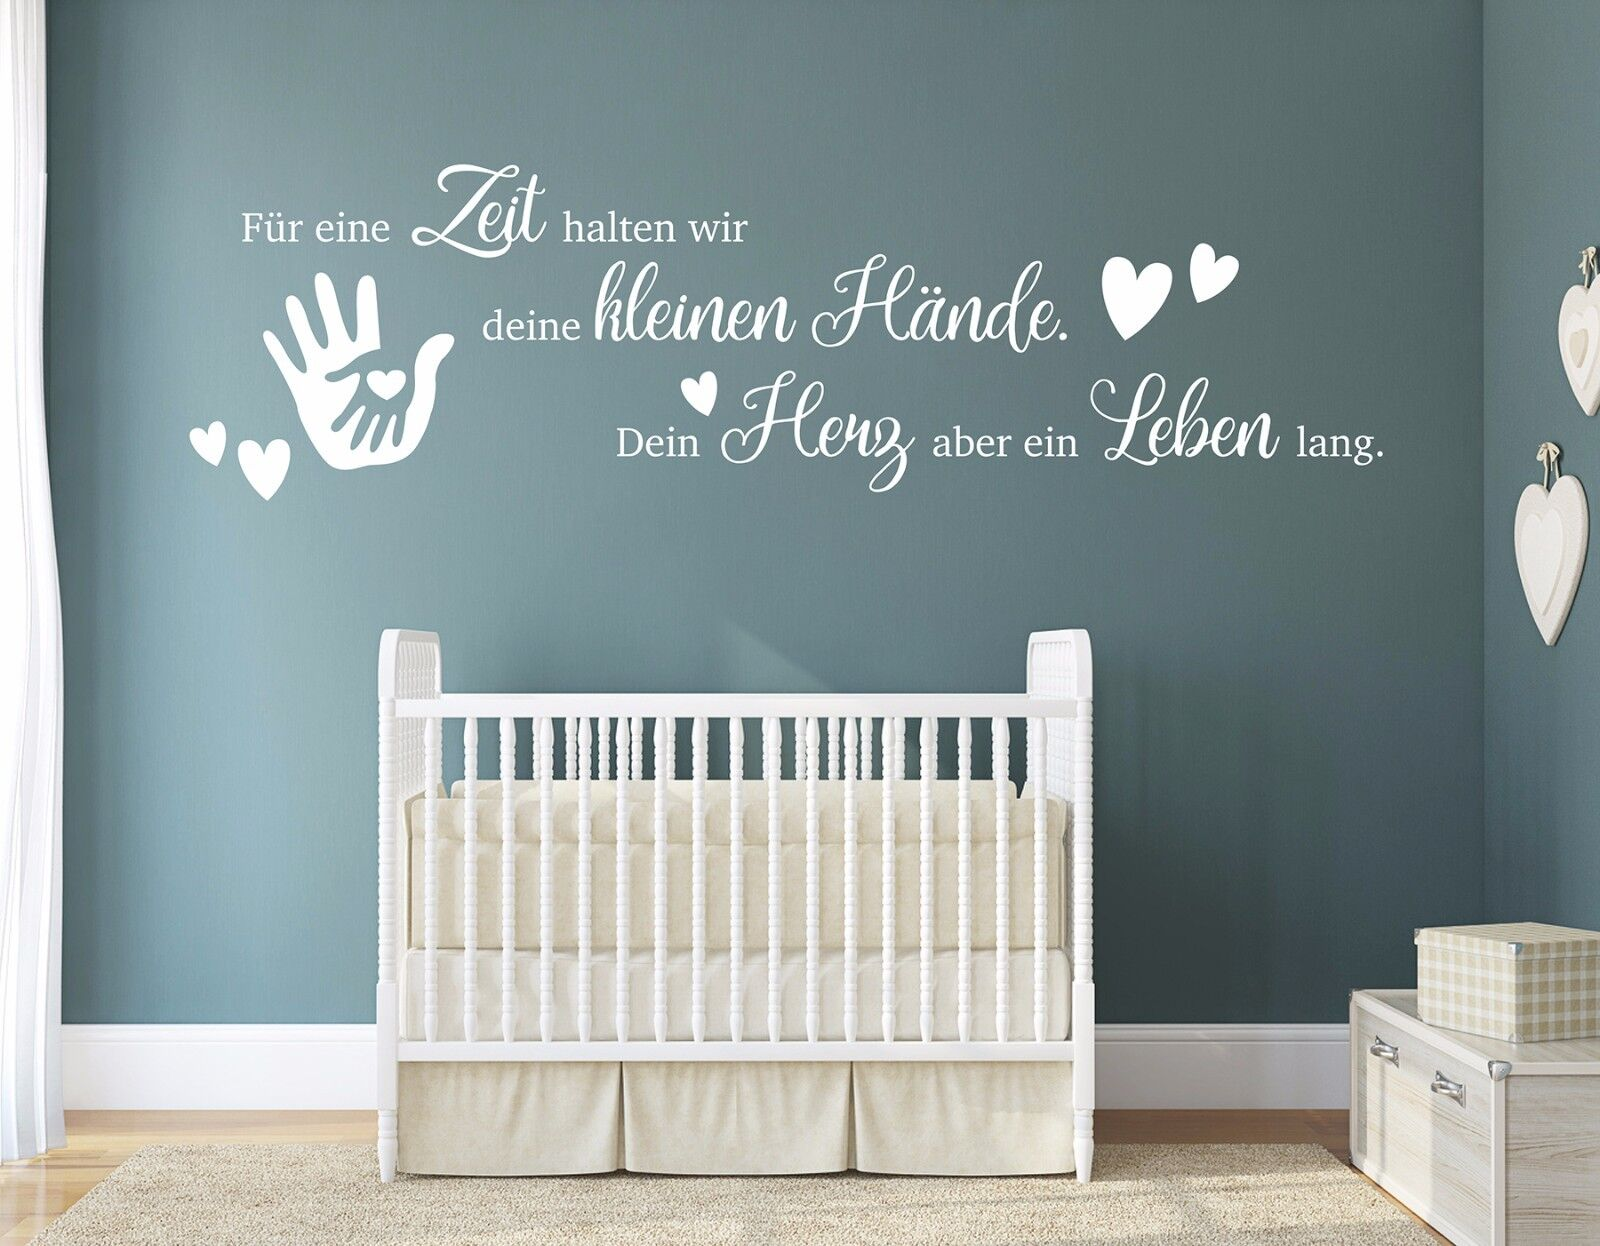 wandtattoo kinderzimmer wandtatoo m dchen junge babyzimmer wandspruch pkm191 eur 14 39. Black Bedroom Furniture Sets. Home Design Ideas